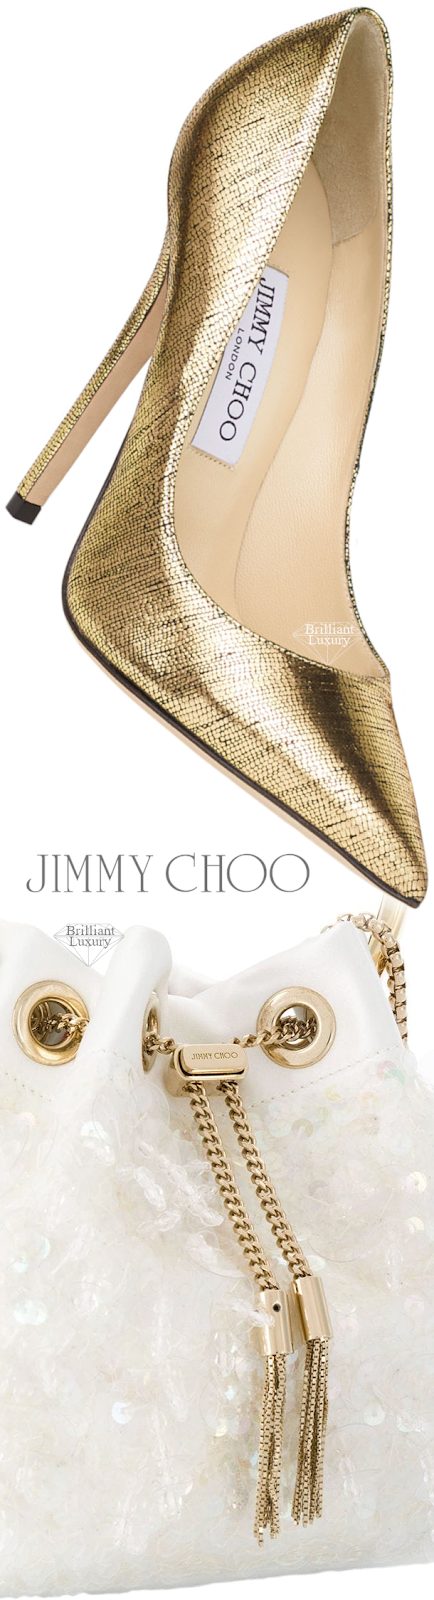 Perfect Pairings♦Jimmy Choo Anouk Metallic Gold Lizard Print Leather Pointed Pumps and White Bon Bon Dumpling Bag #brilliantluxury